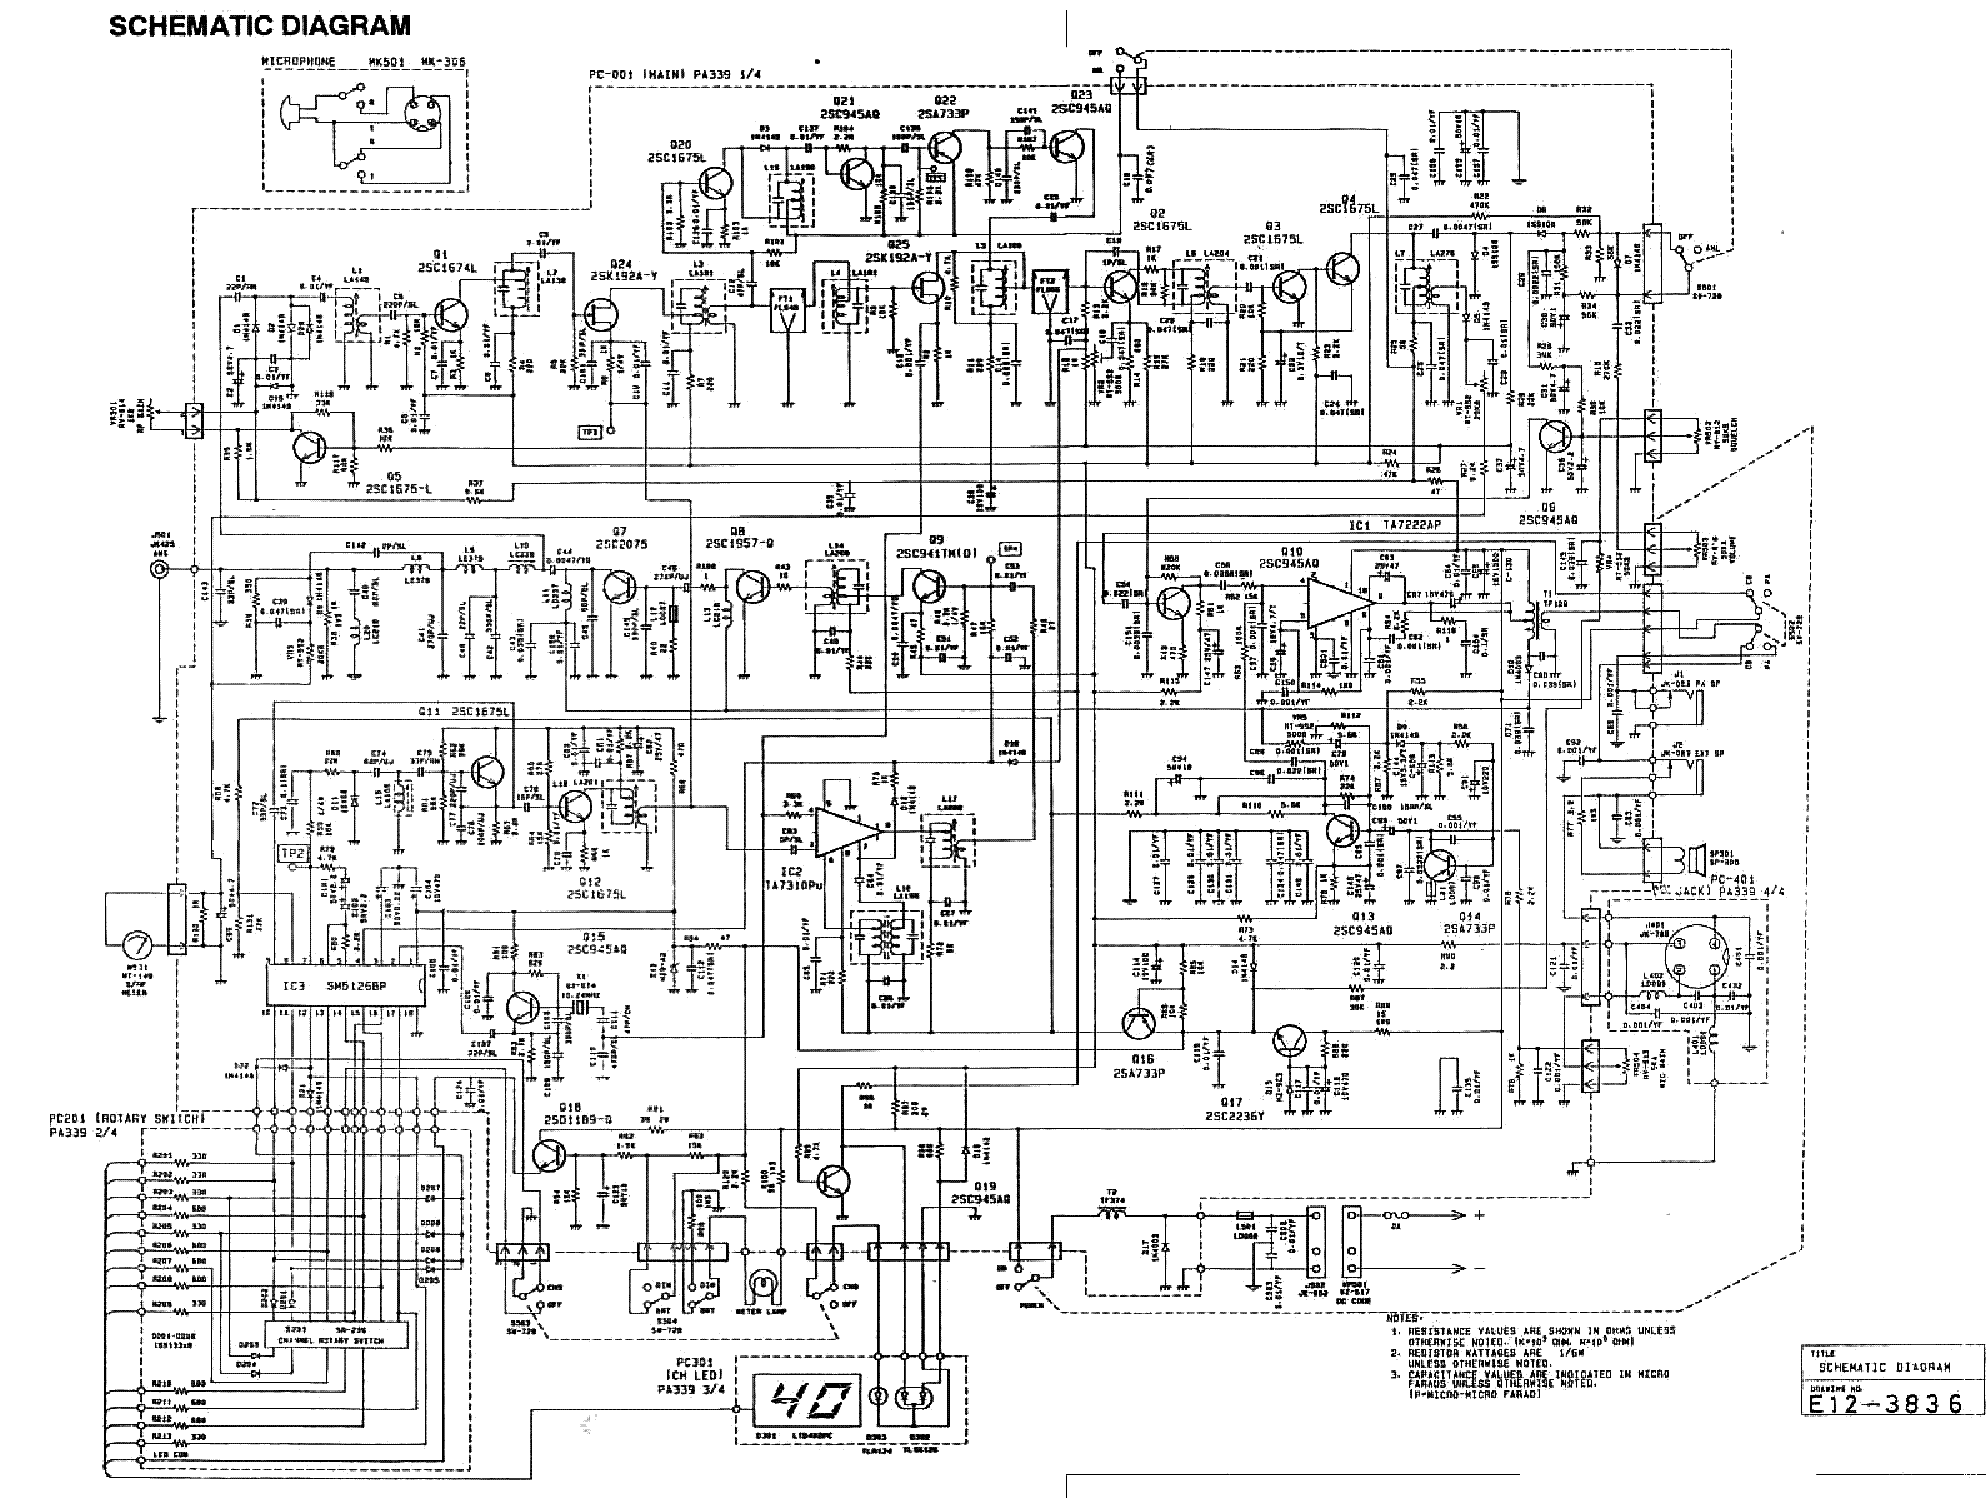 UNIDEN GRANT Service Manual download, schematics, eeprom